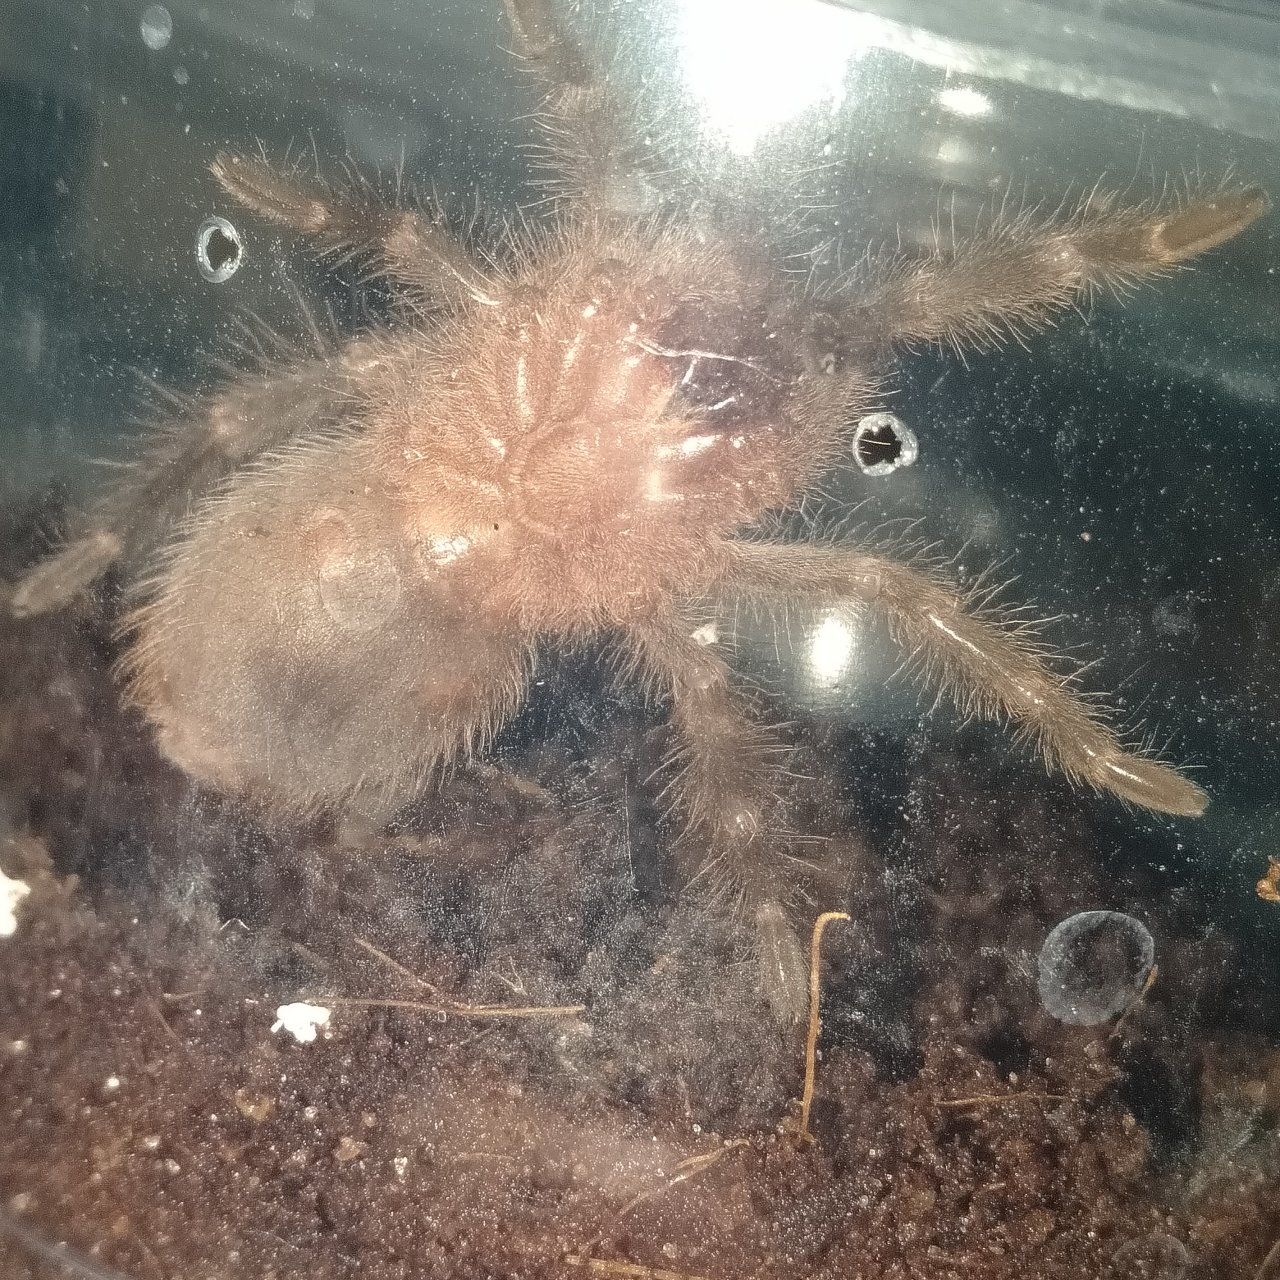 G. Pulchripes sling